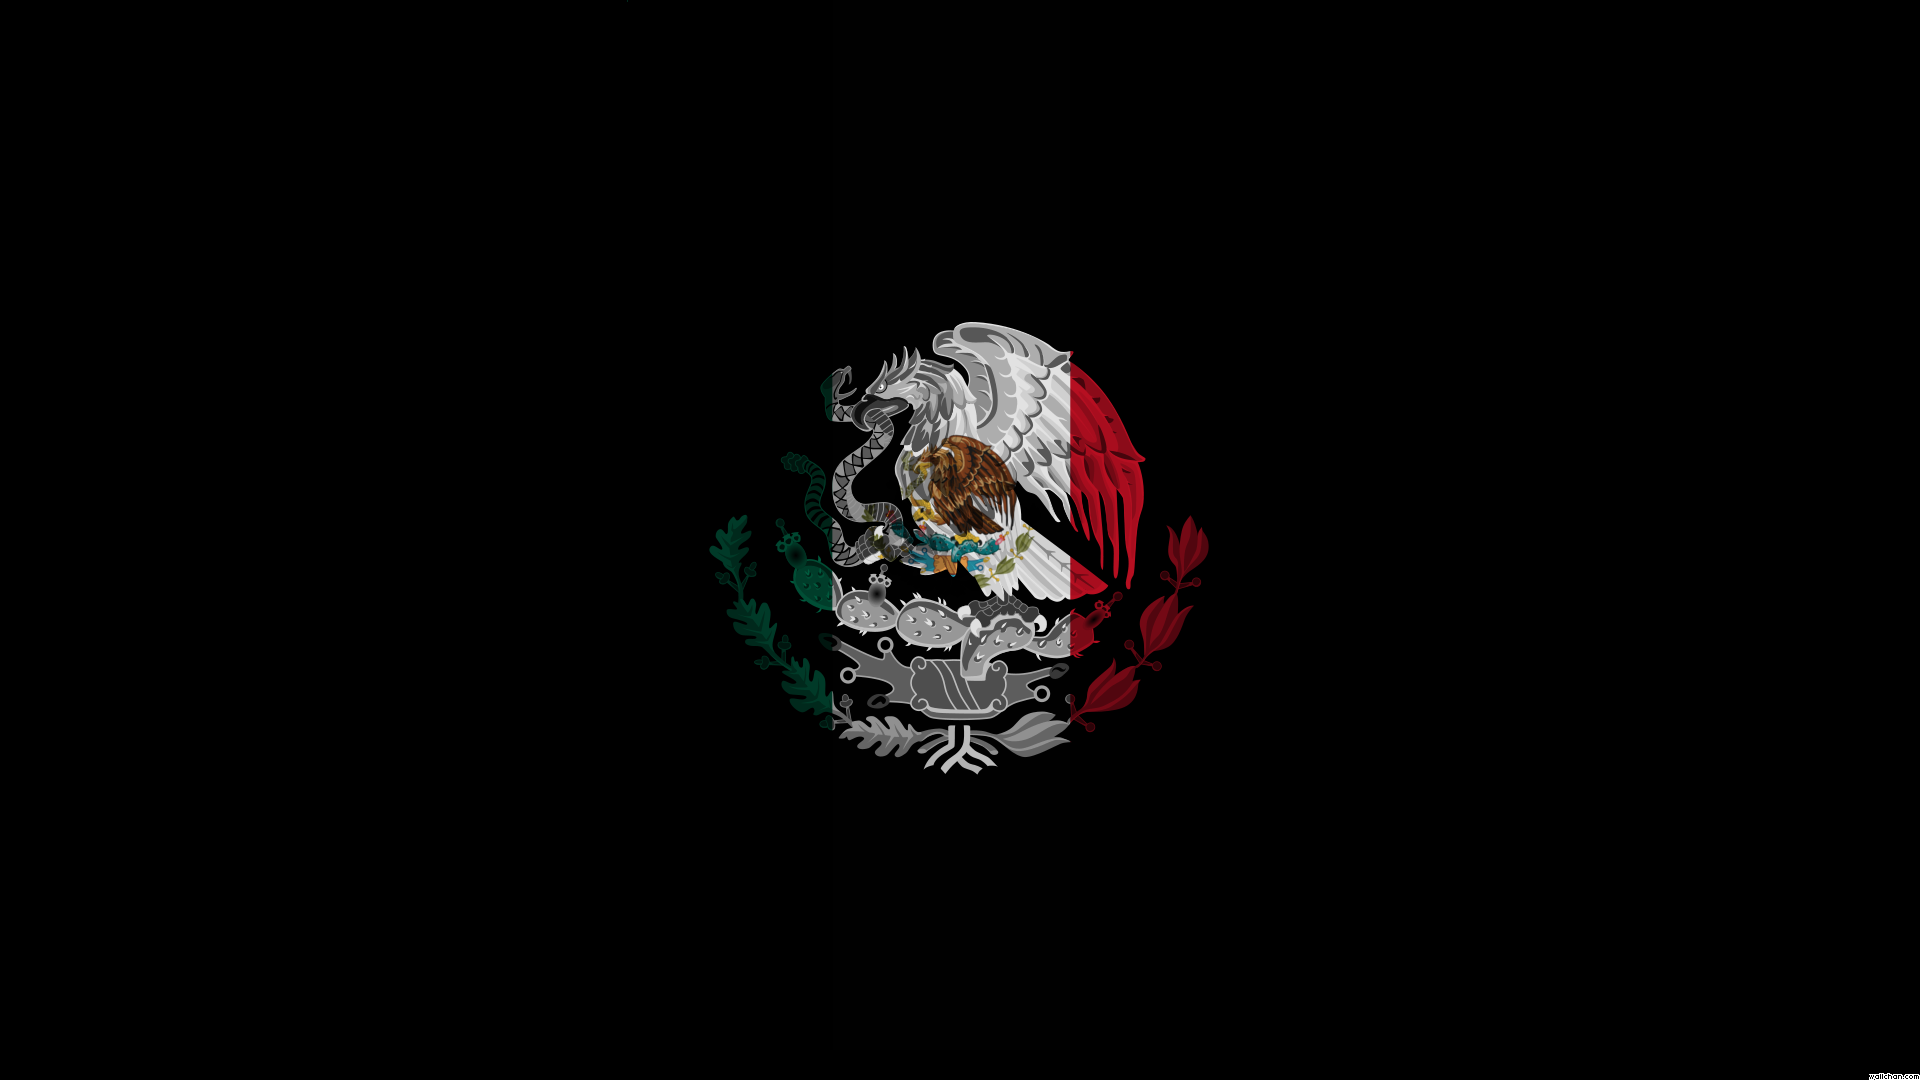 v 37 hd images of mexico ultra hd 4k mexico wallpapers